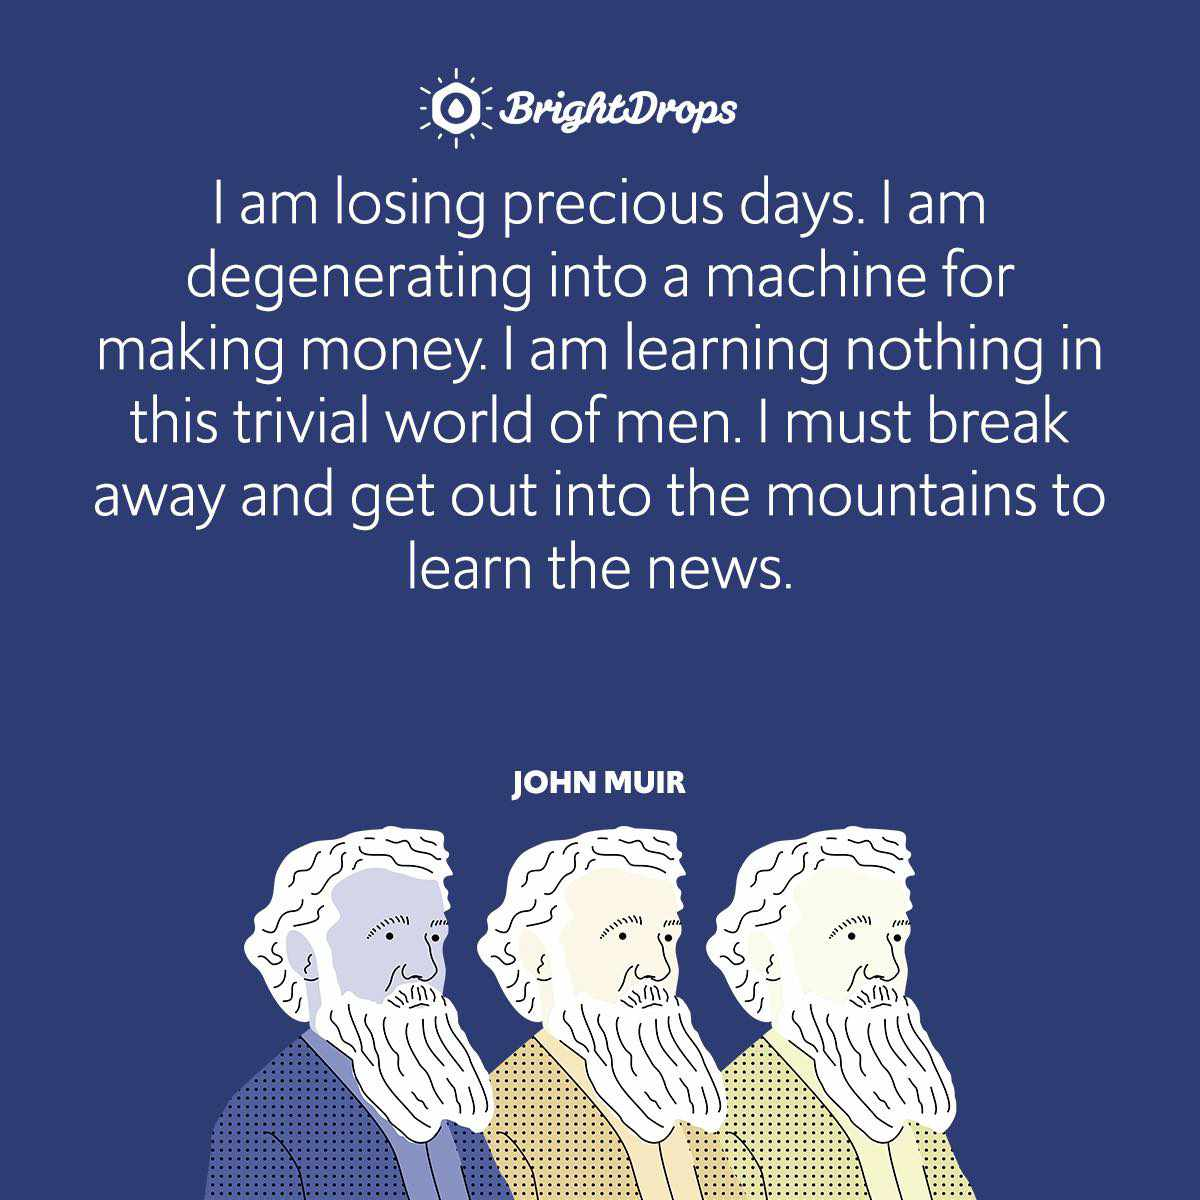 I am losing precious days. I am degenerating into a machine for making money. I am learning nothing in this trivial world of men. I must break away and get out into the mountains to learn the news.